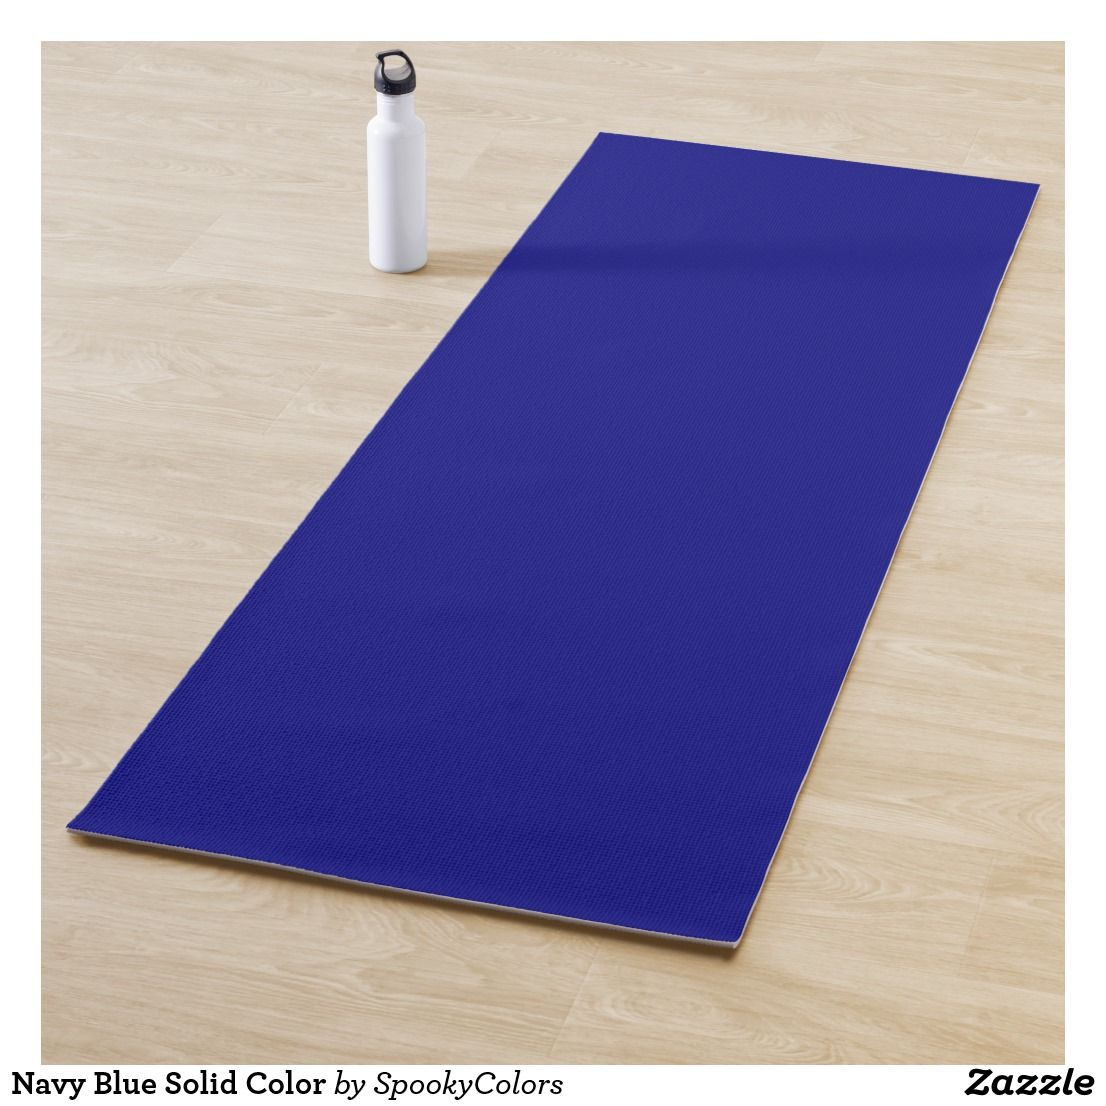 Navy Blue Solid Color Yoga Mat Zazzle Com Custom Yoga Mat Printing Double Sided Color